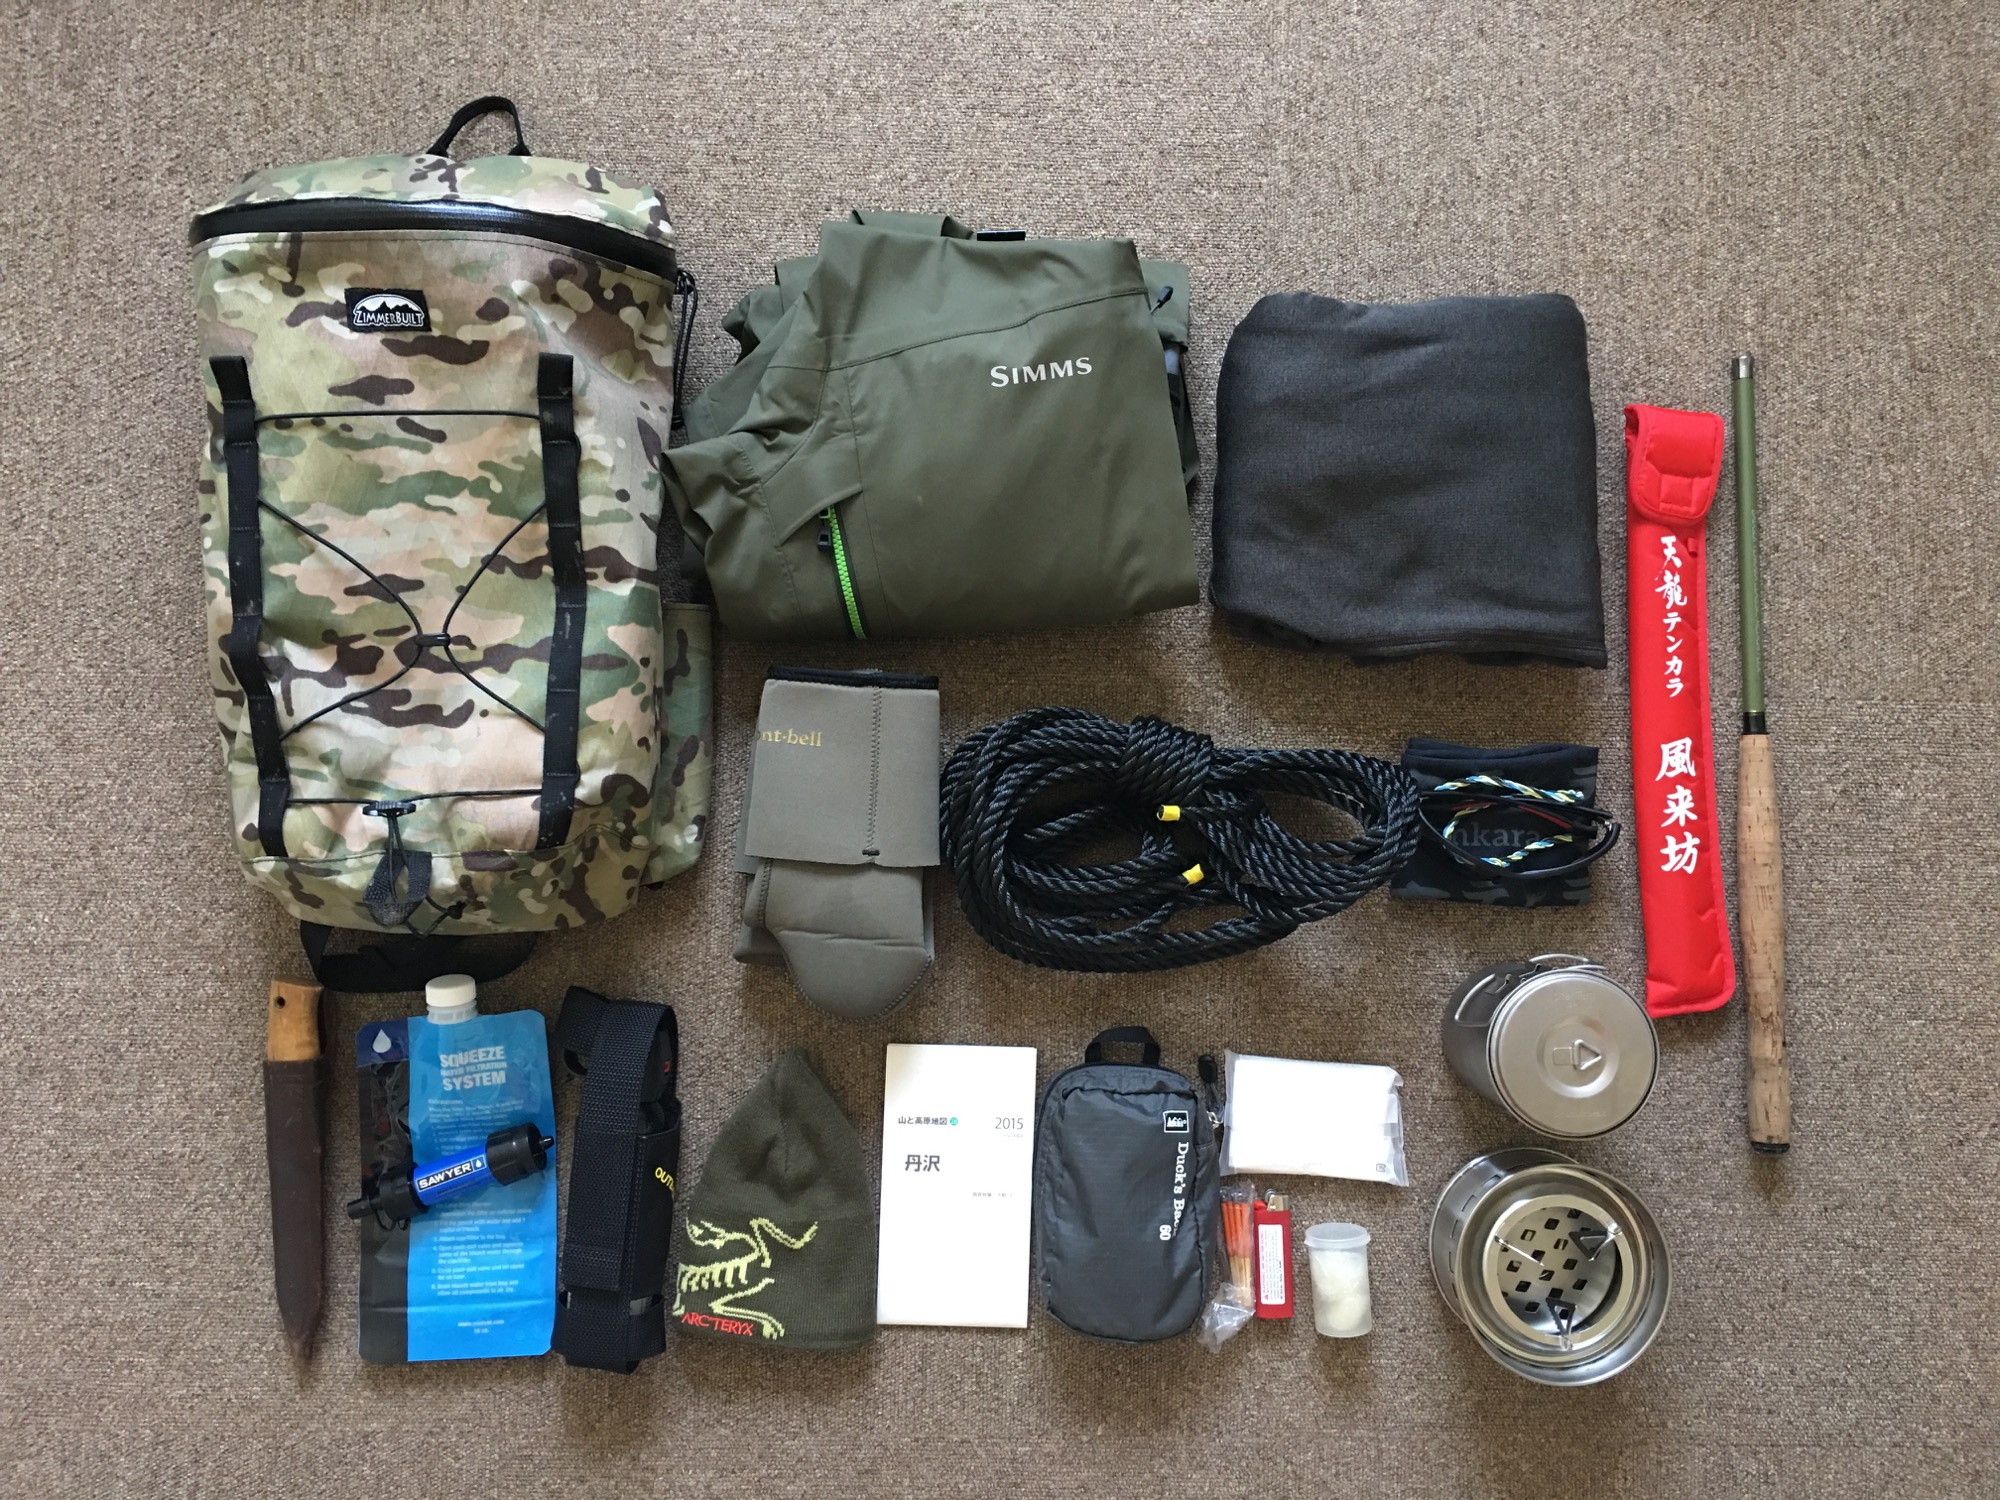 Gear laid out that fits inside the pack